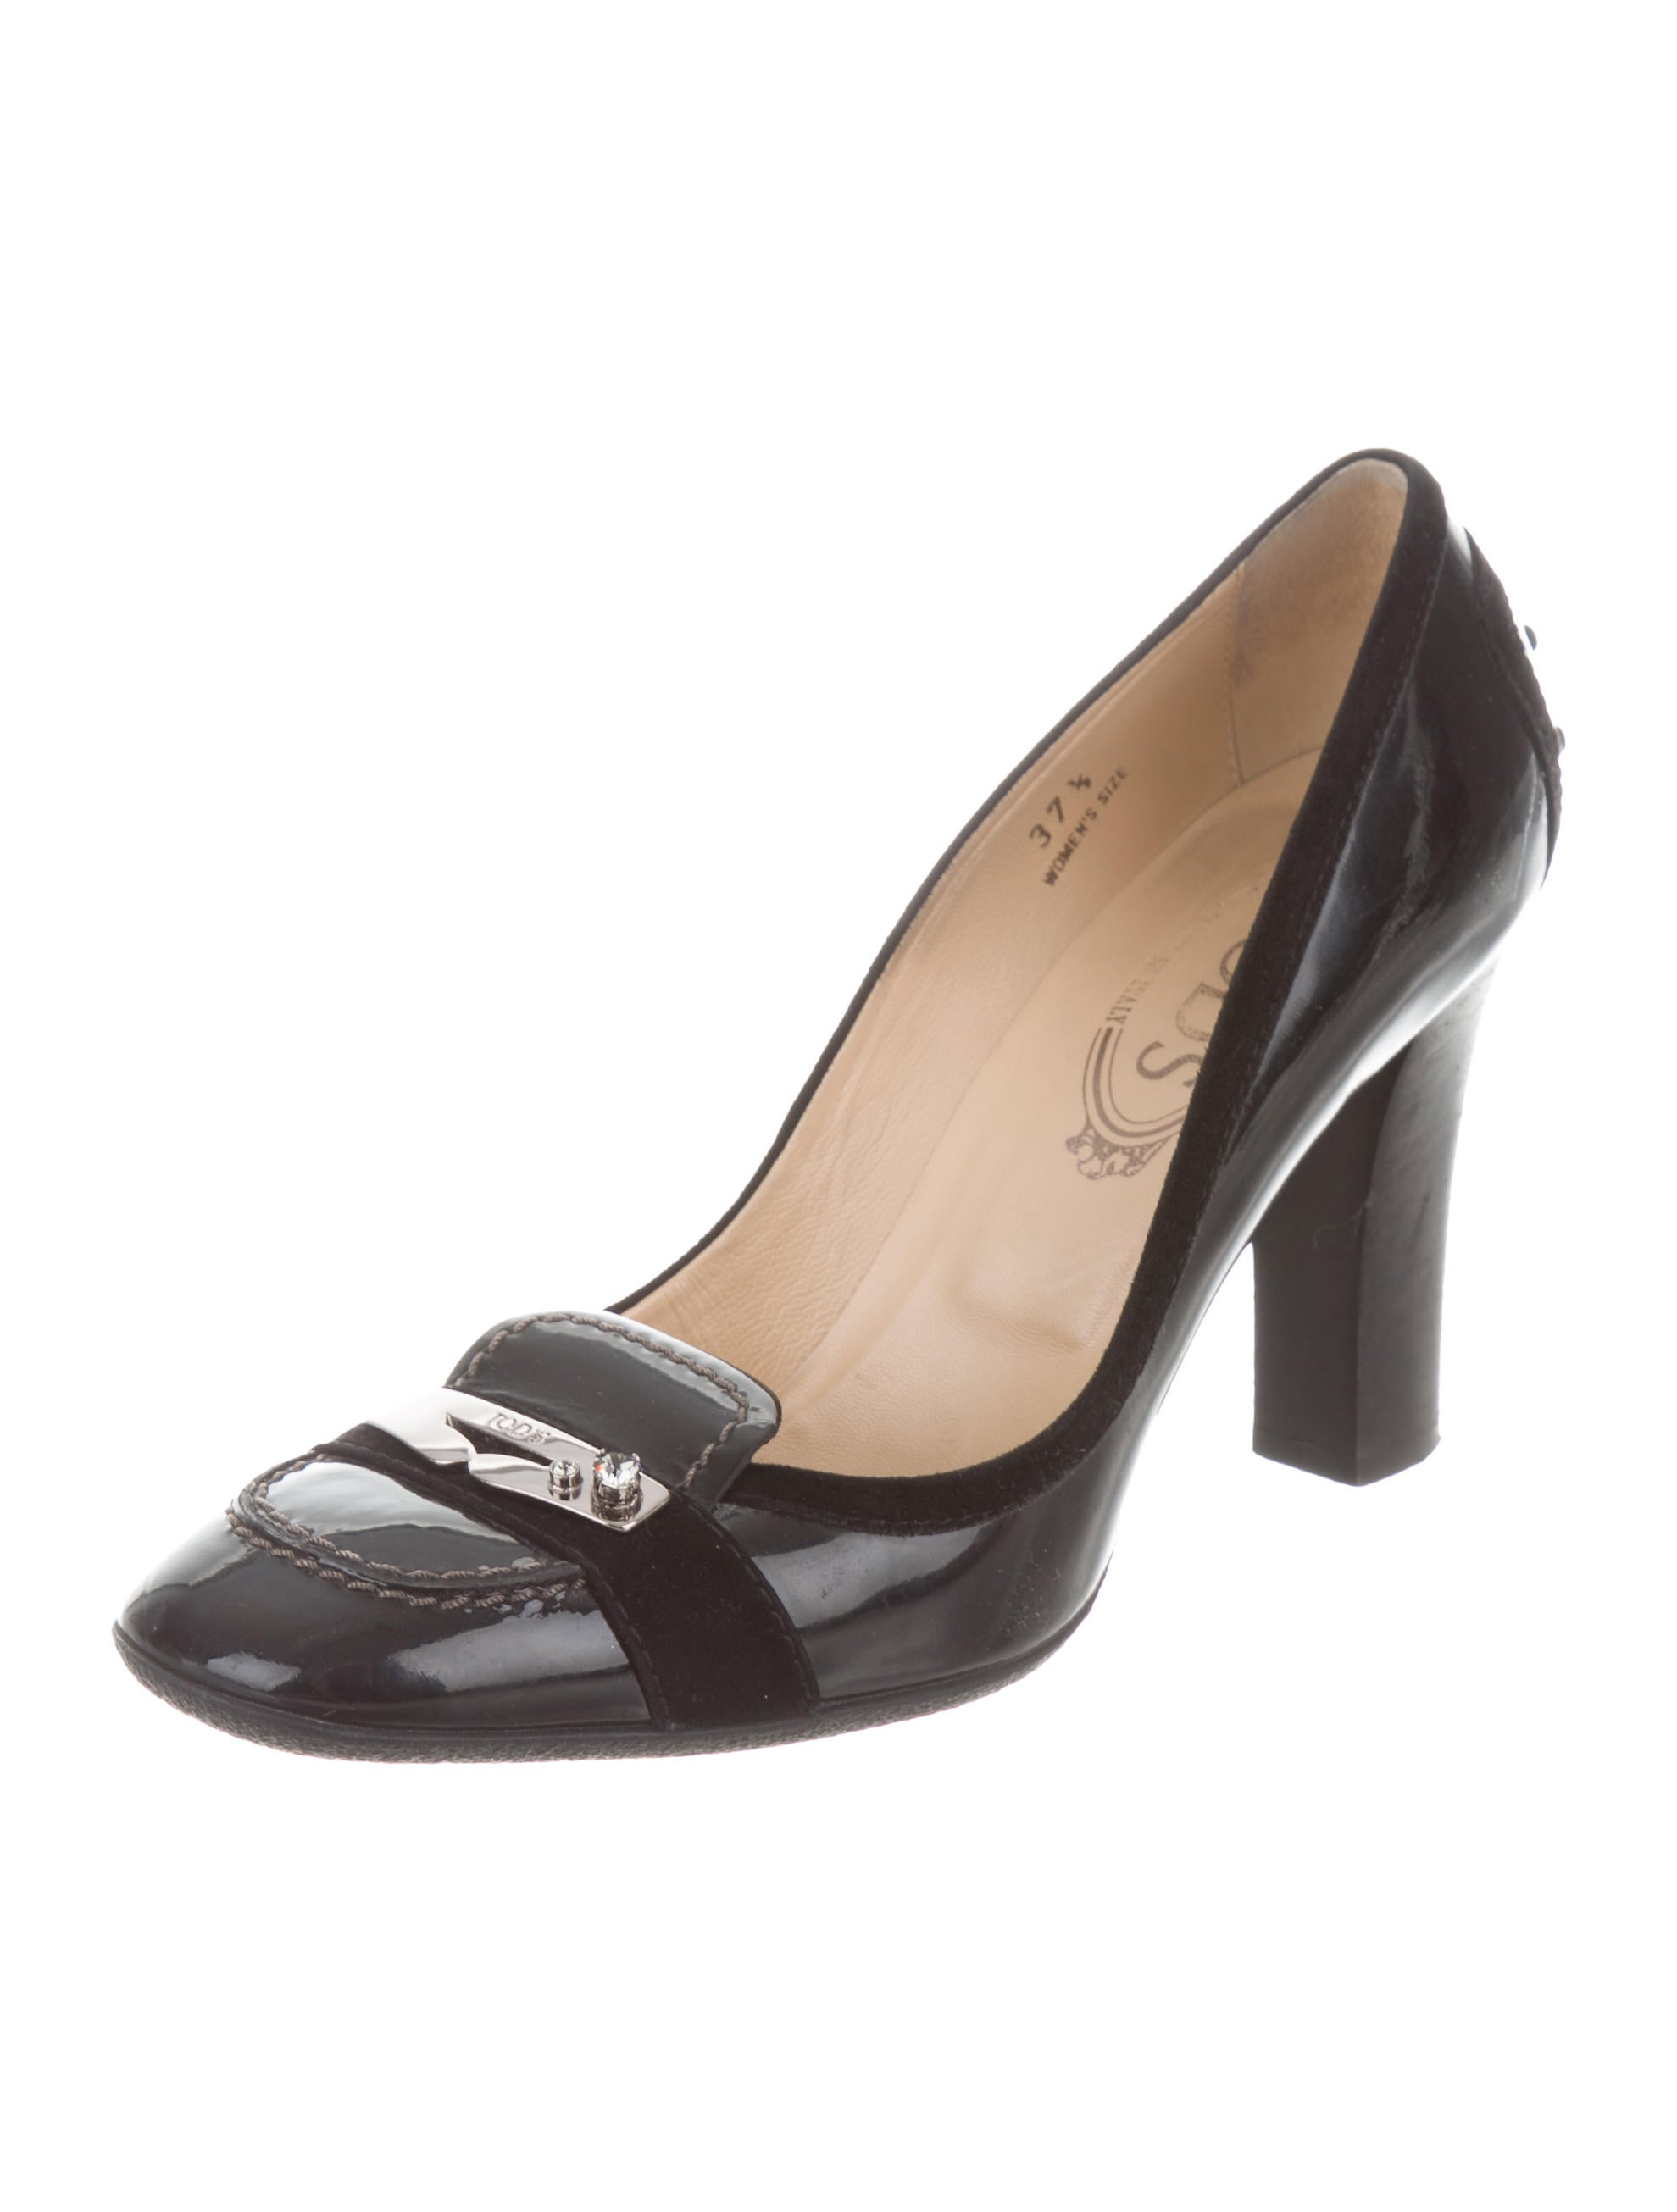 Tod's Leather Square-Toe Pumps buy cheap shopping online cheap wholesale cheap deals vnpH8ItSiA